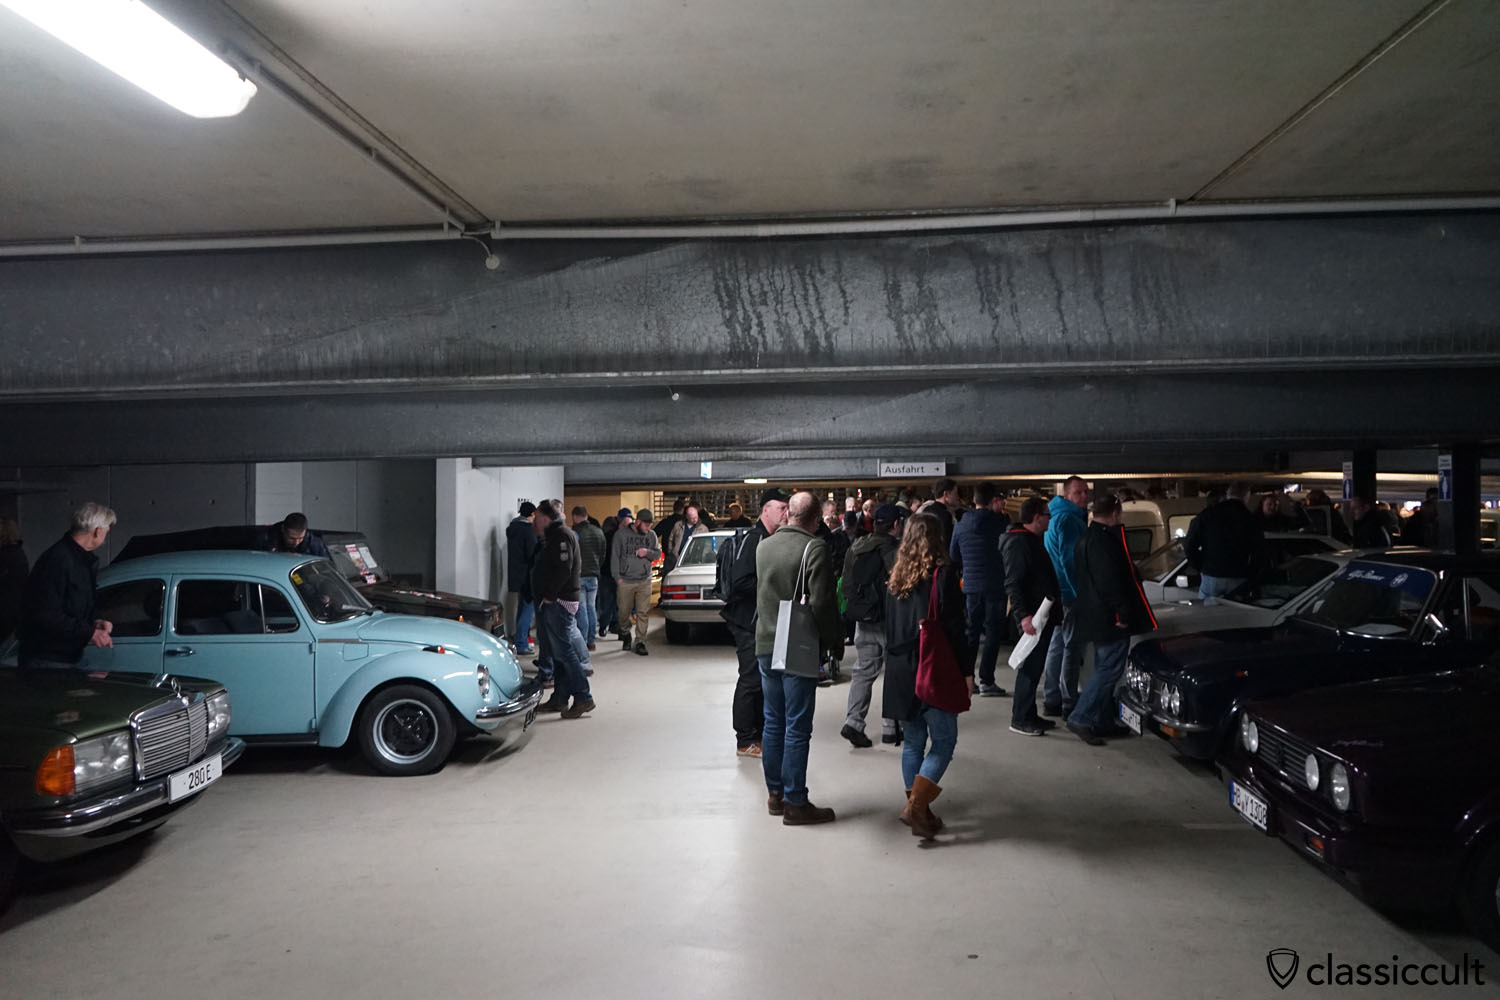 ParkHaus with lots of classic cars for sale